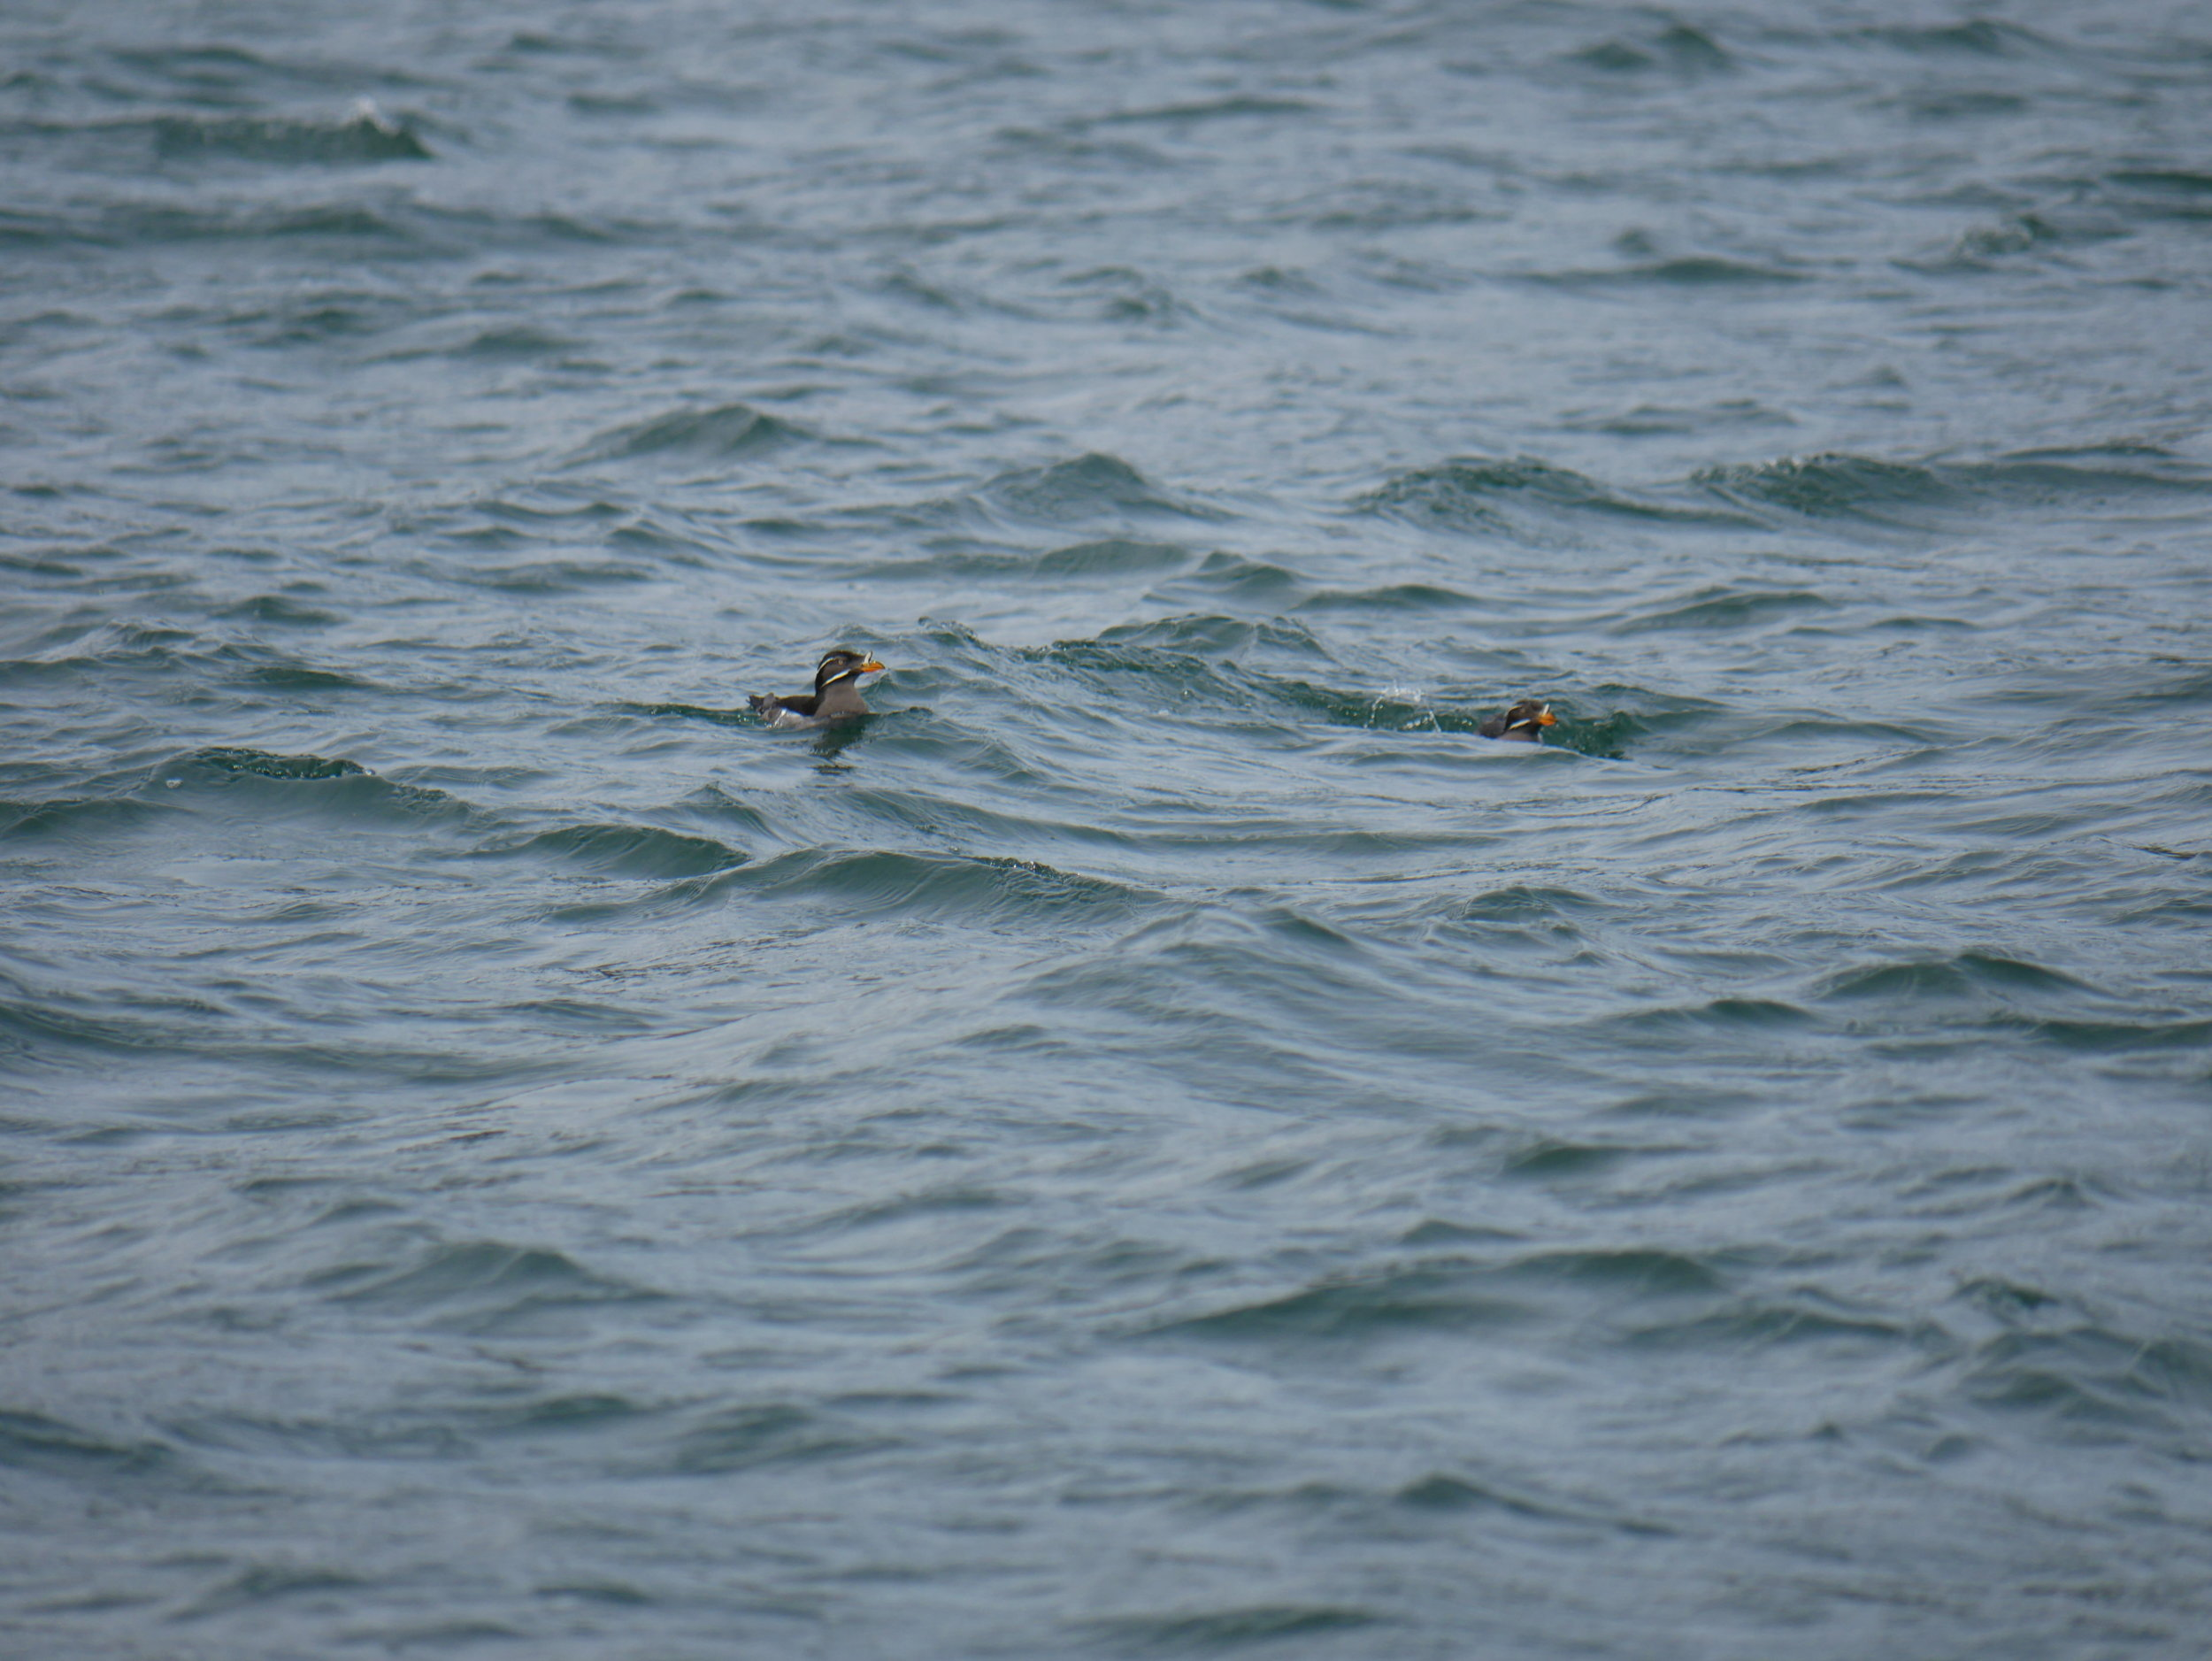 We also had the opportunity of watching these Rhinoceros Auklet